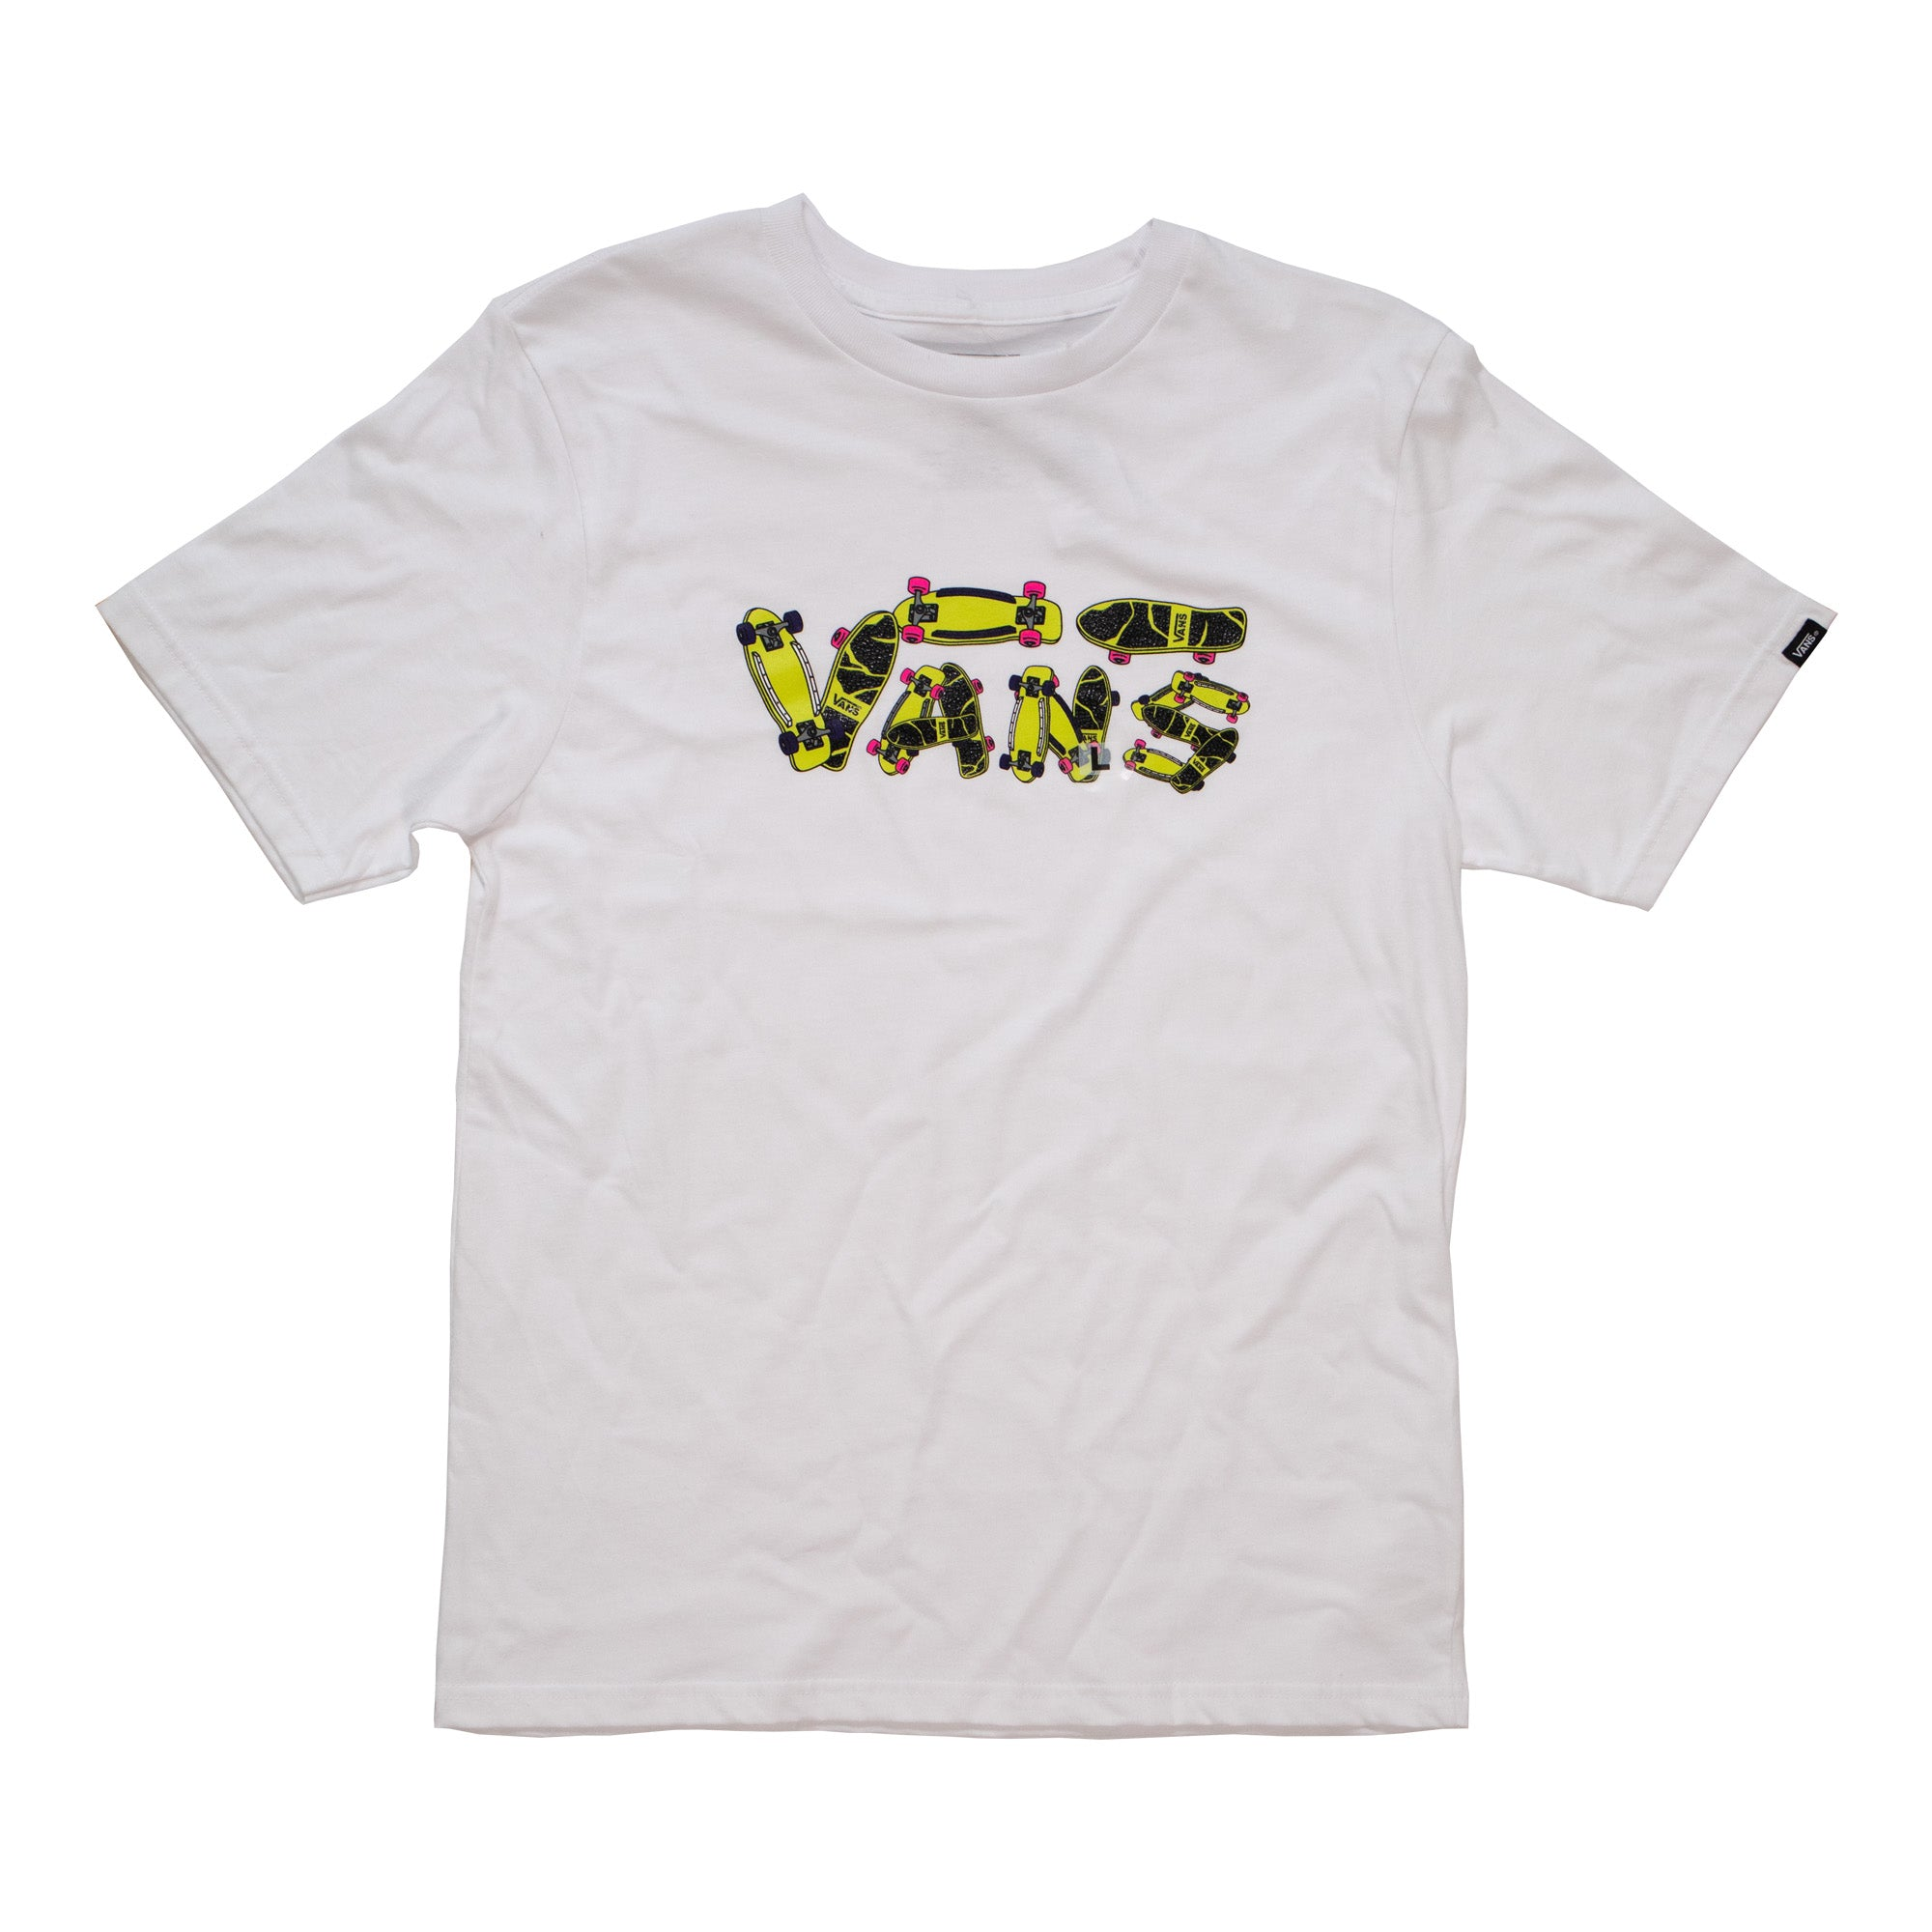 Vans Gripped Boy's S/S T-Shirt